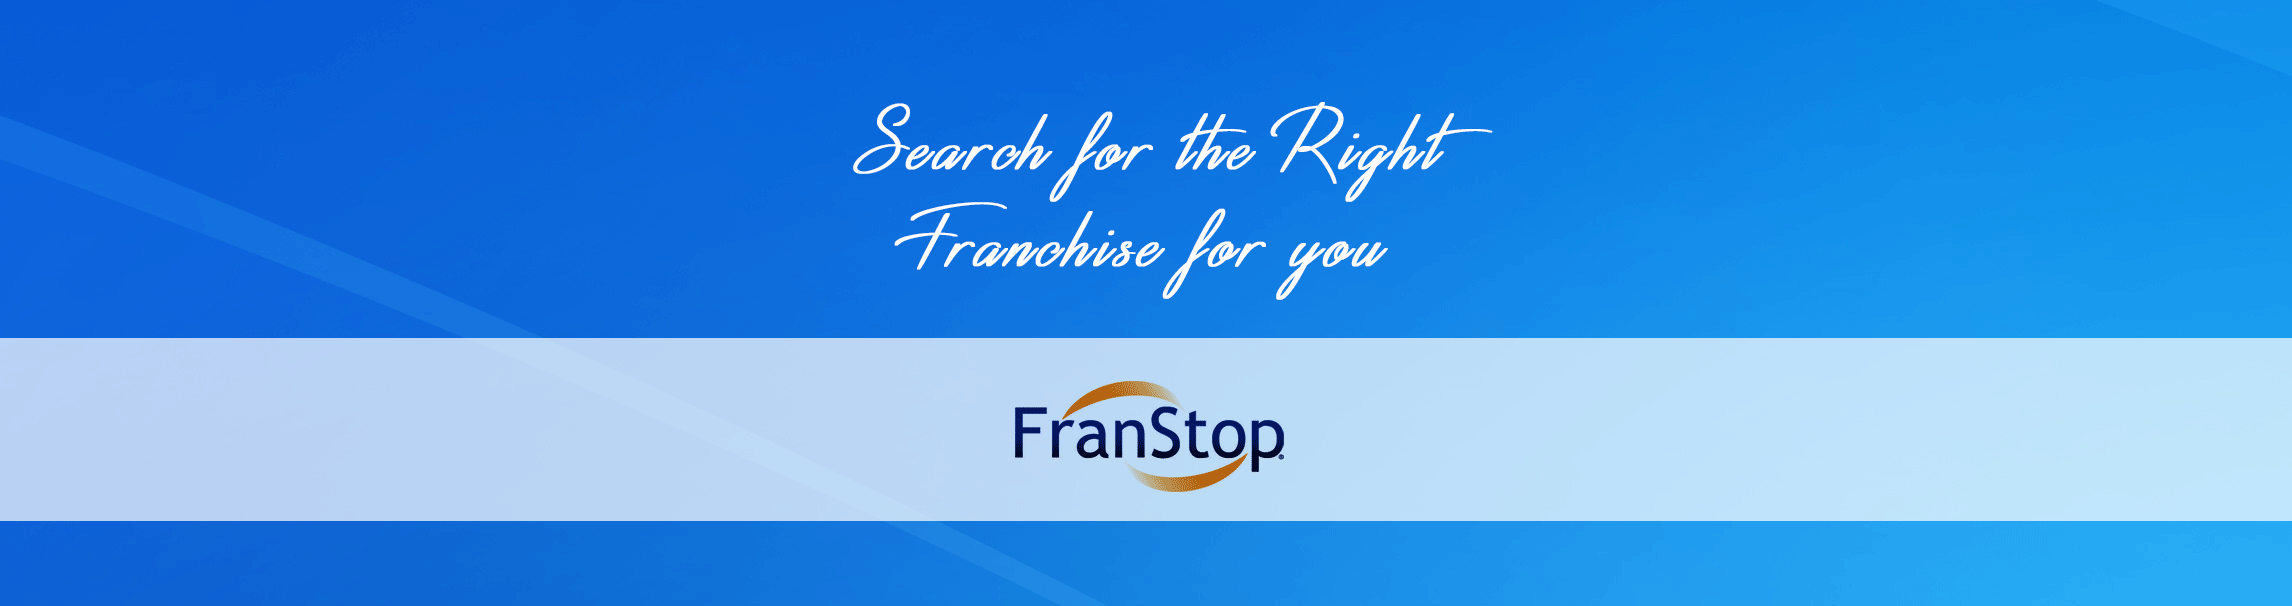 Search_Franchise_Business_FranStop_franchise_for_sale